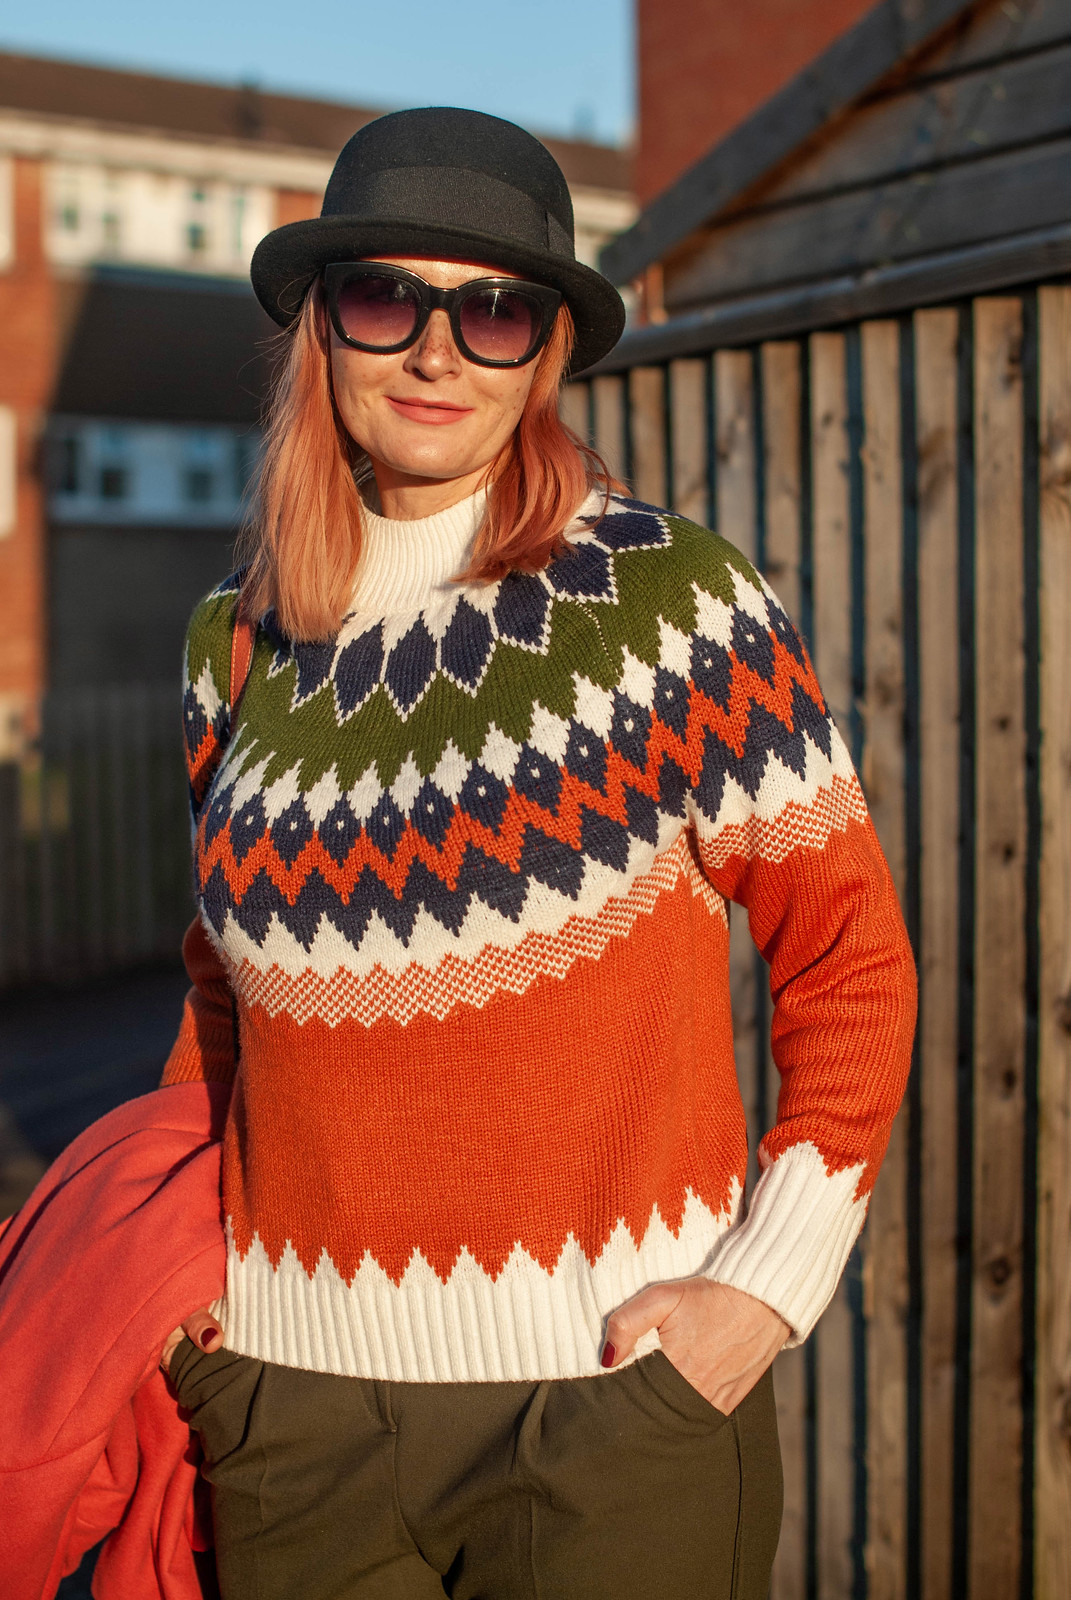 Bringing Back the Bowler Hat and a Modern Nordic Sweater | Not Dressed As Lamb, Style for Over 40 Women